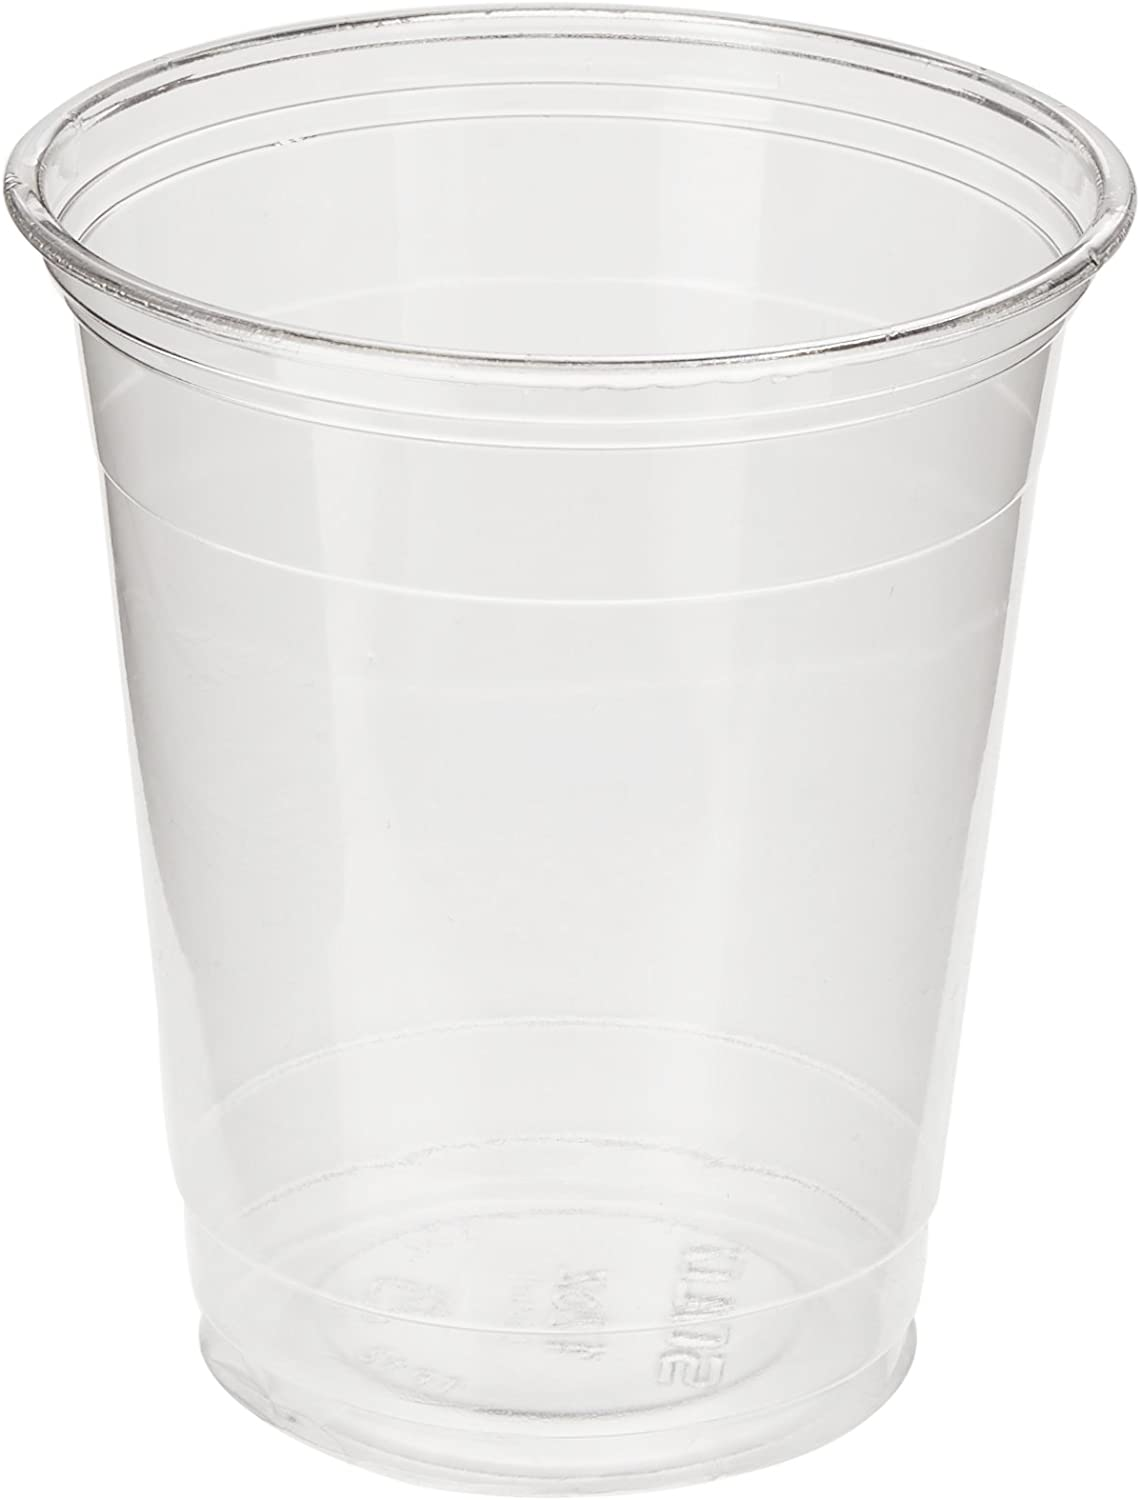 SOLO Cup Company Not Available TP12-0090 PETE Ultra Cold Drink Cup, 12 oz, Clear, 50 Count